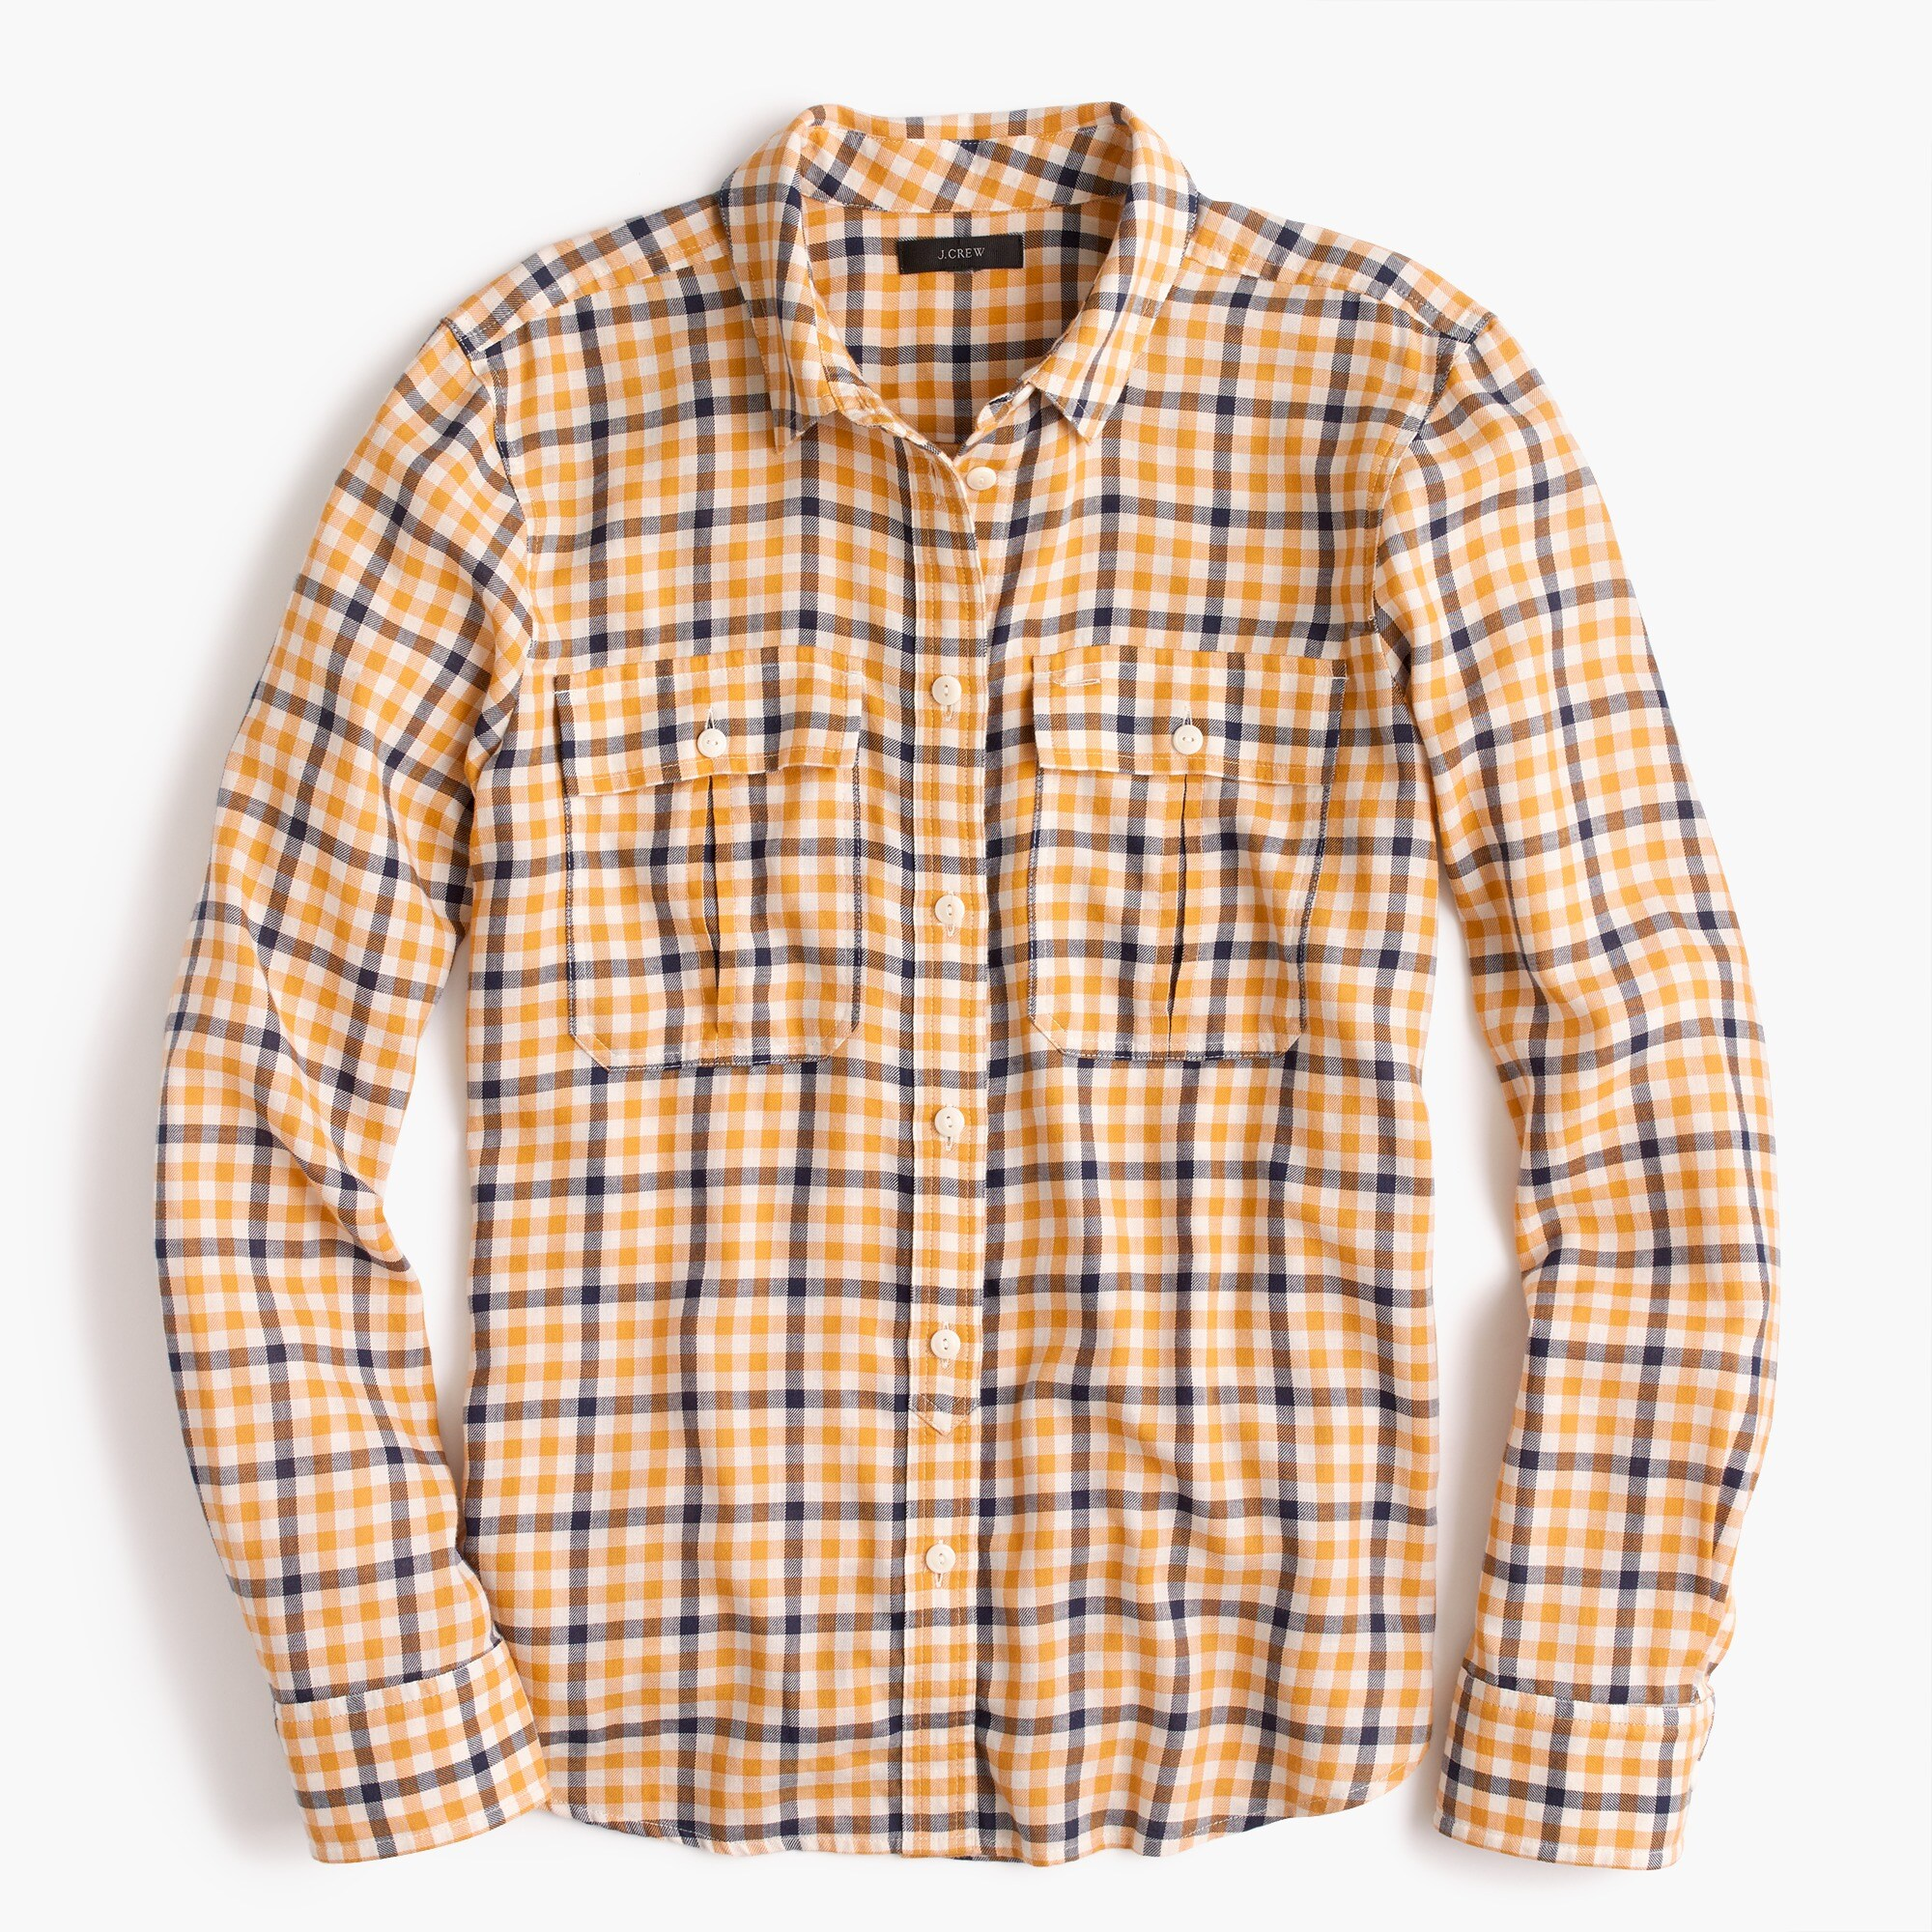 boyfriend shirt in topaz plaid : women shirtsandtops